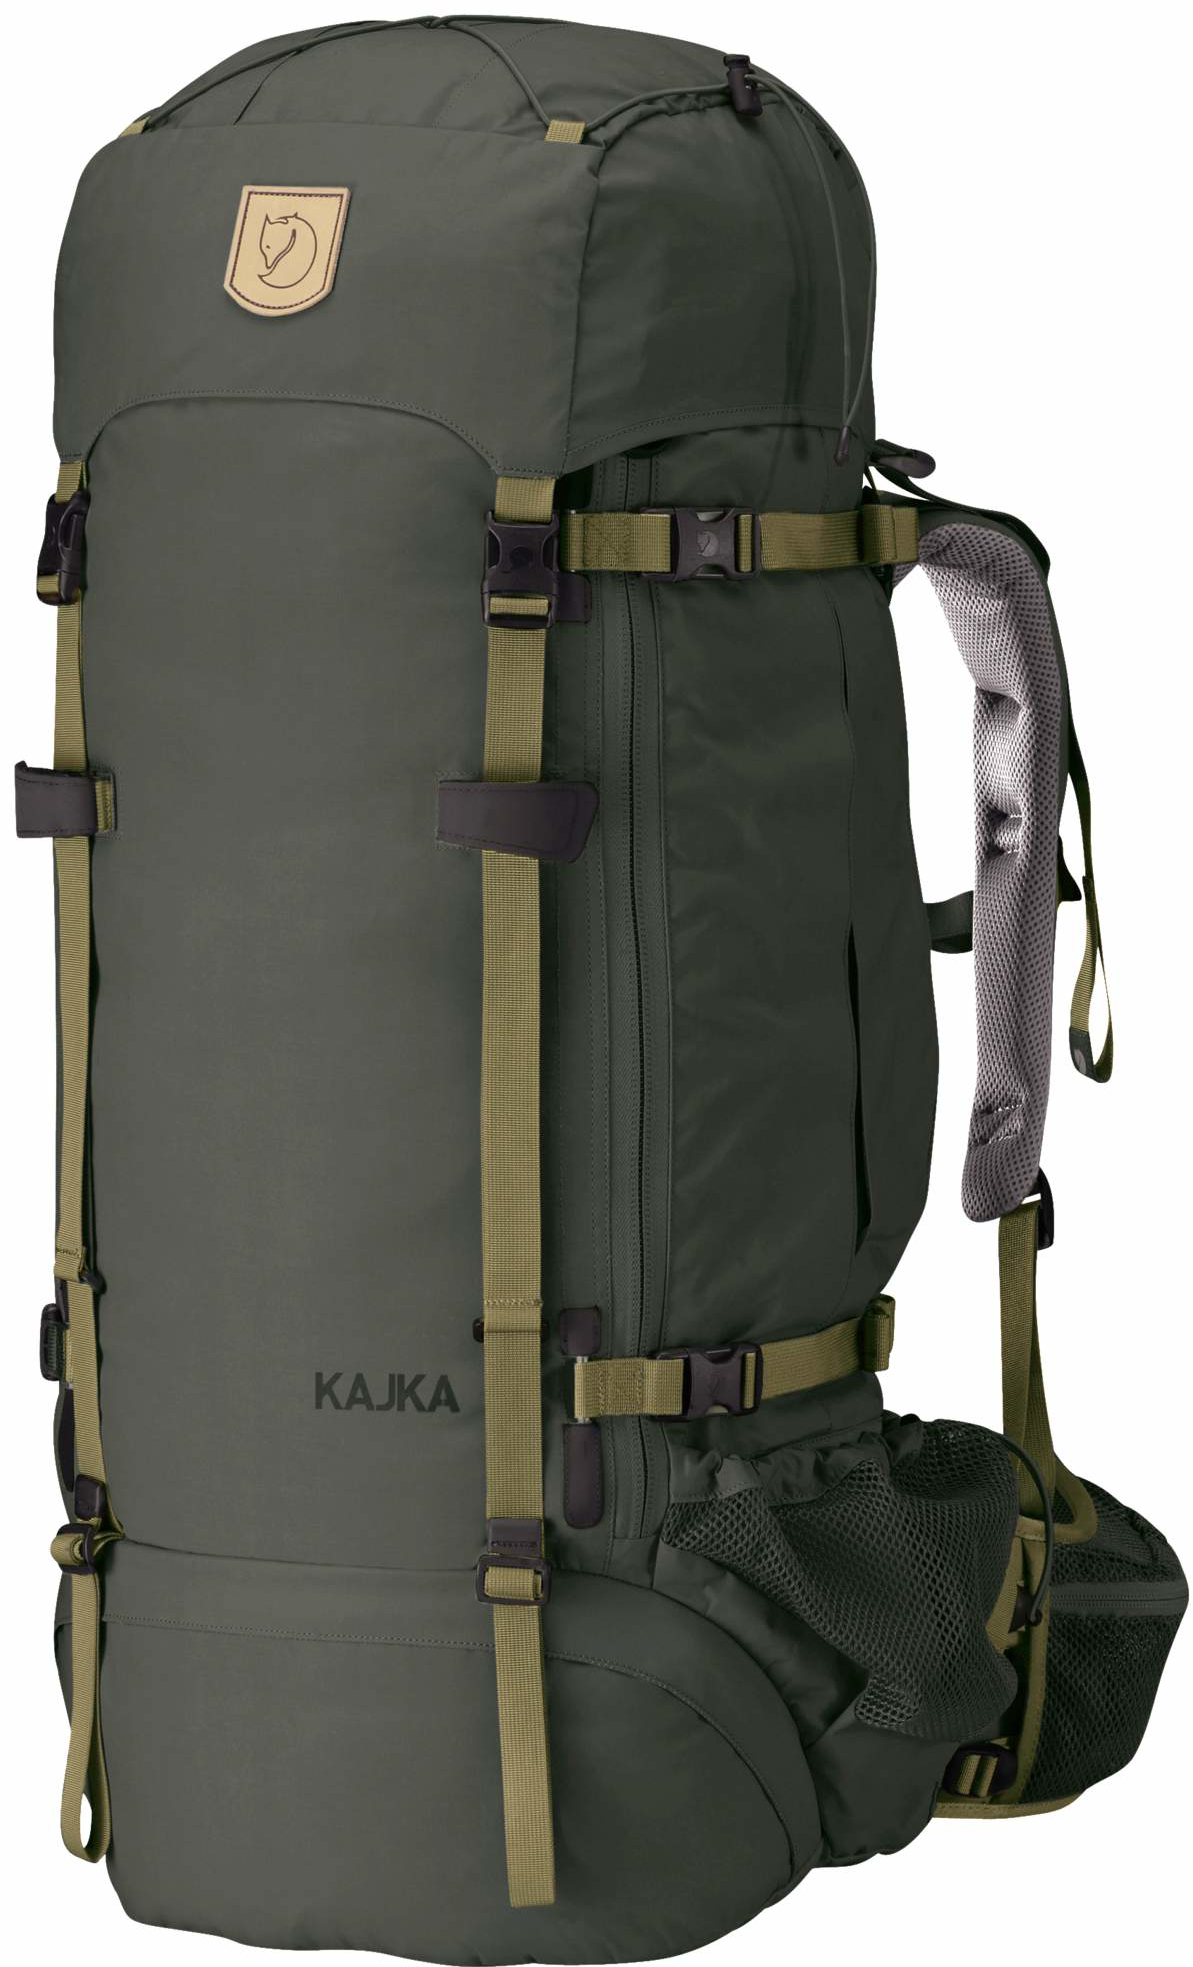 Fjallraven Kajka 75 backpack